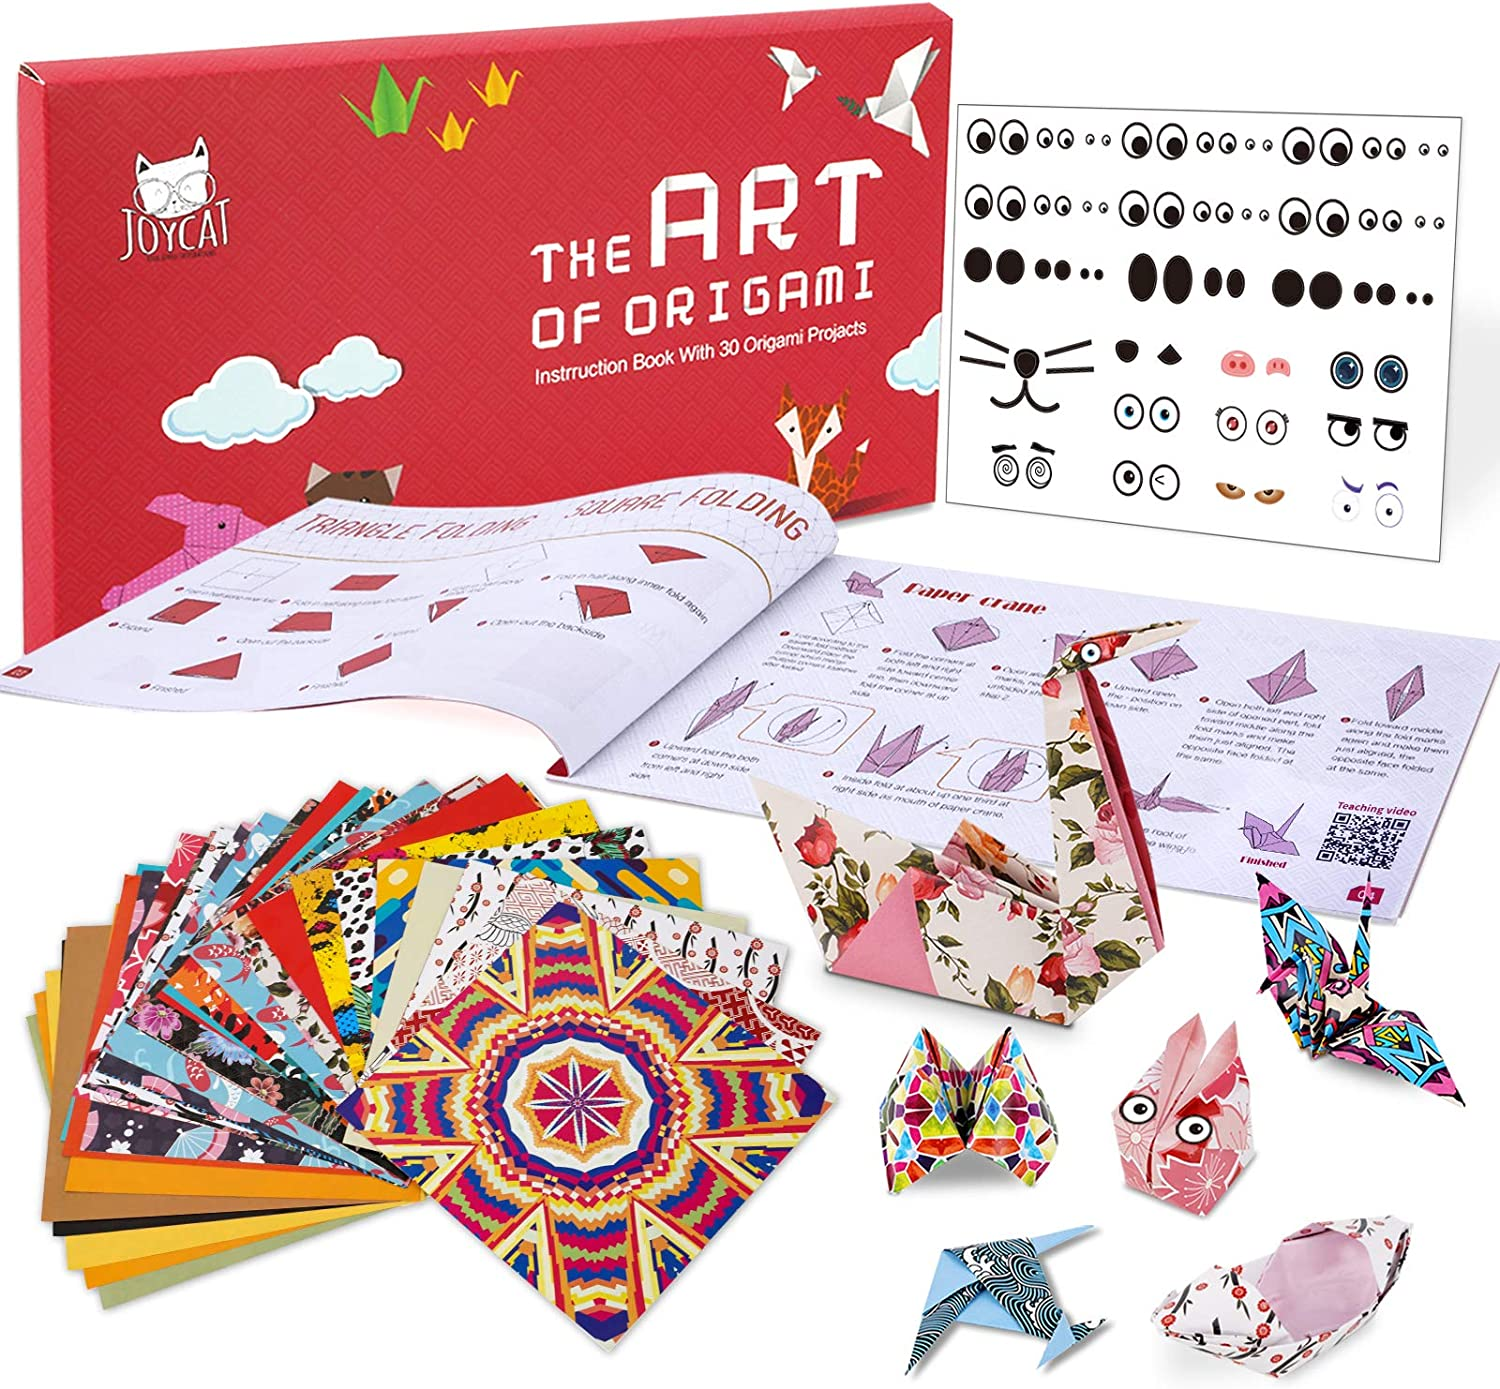 JoyCat Origami Paper Kit, 90 Sheets Double Sided Origami Paper, Kaleidoscope, Japanese and Animal Patterns, 30 Origami Projects Craft Guiding Booklet for Beginner Training and School Craft Lessons…